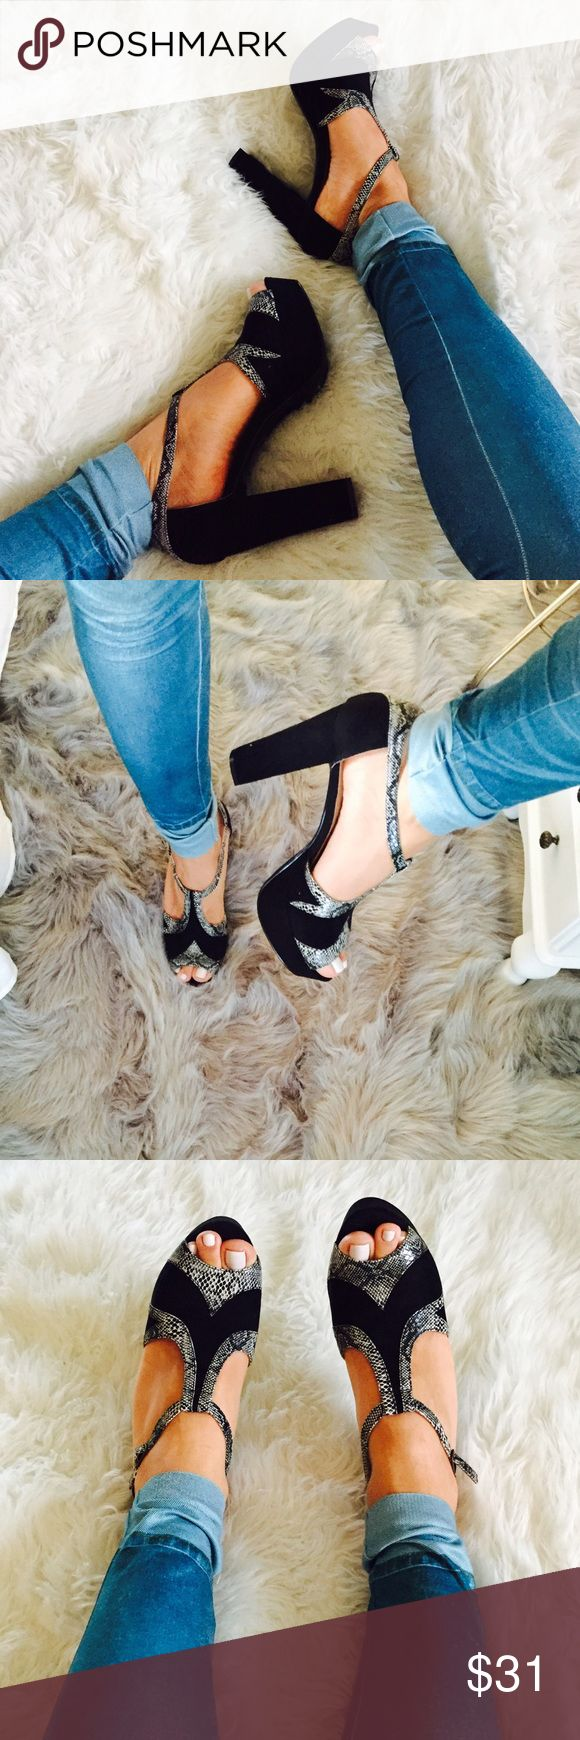 Snake skin peep toe platform heels Brand new in the box  black and snake skin peep toe platform heels. True to size steady and easy to walk . From a smoke free home chelsea crew Shoes Platforms